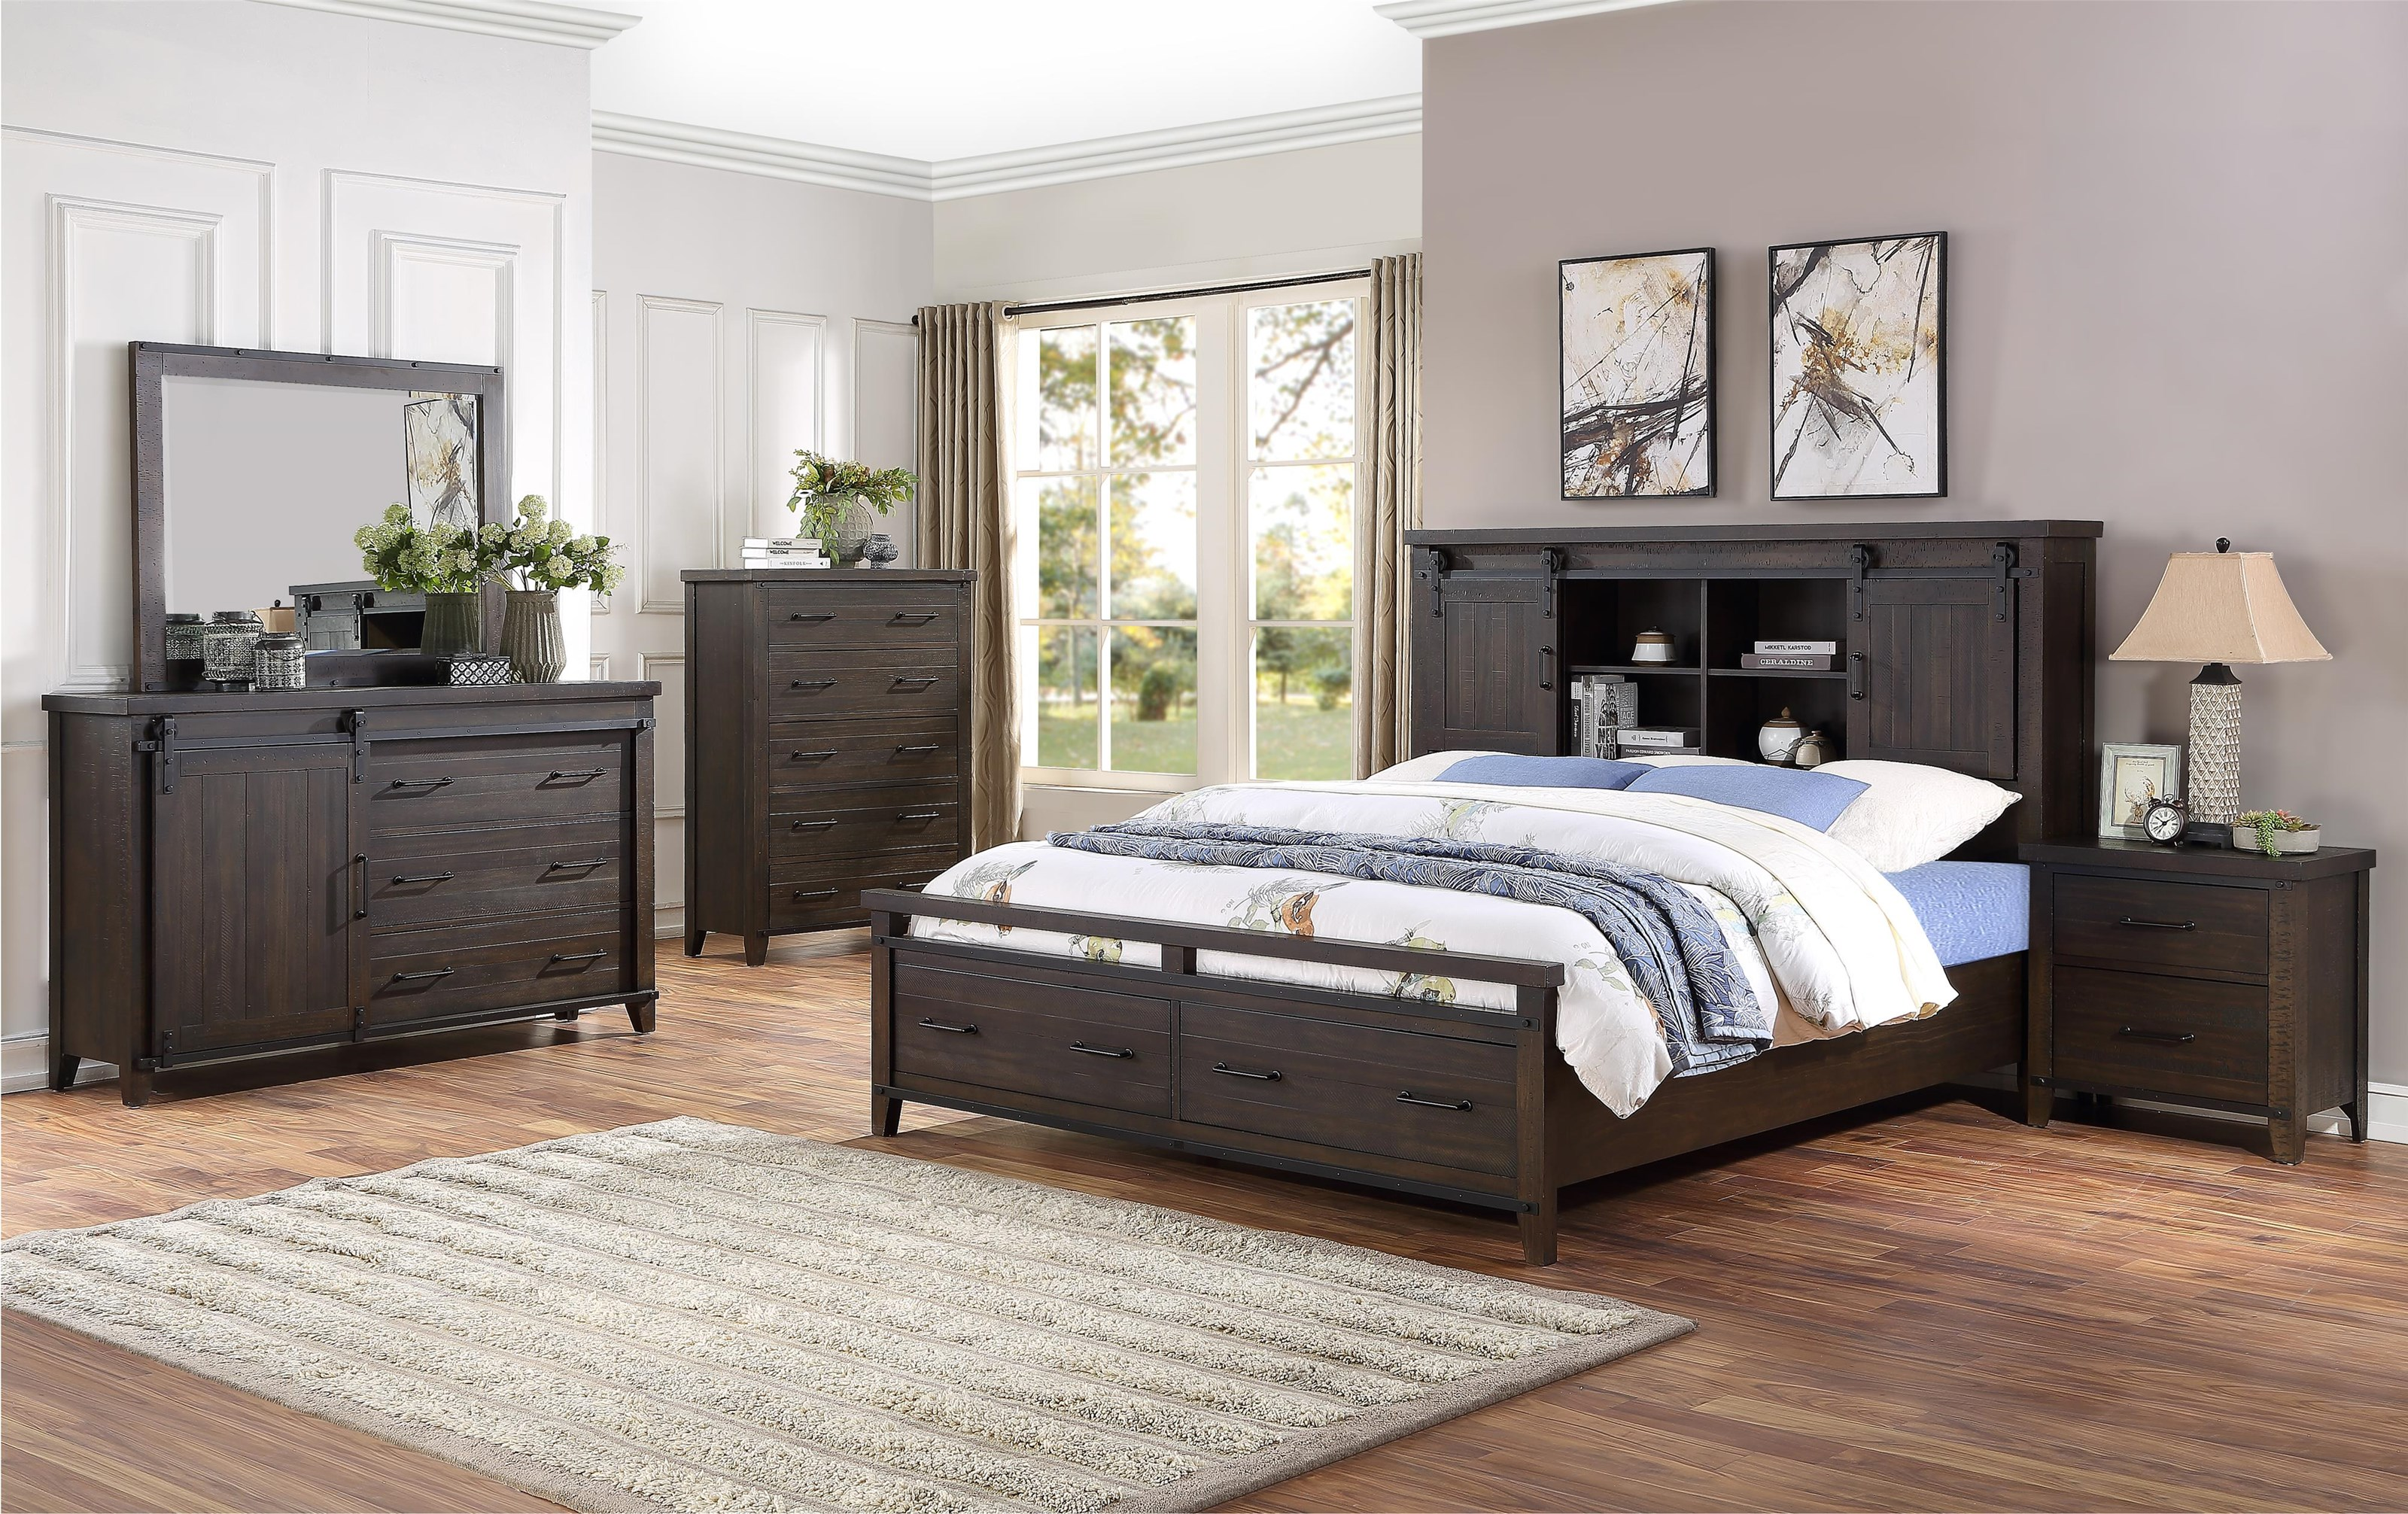 Durango 5 Piece King Storage Bedroom Group by HH at Walker's Furniture